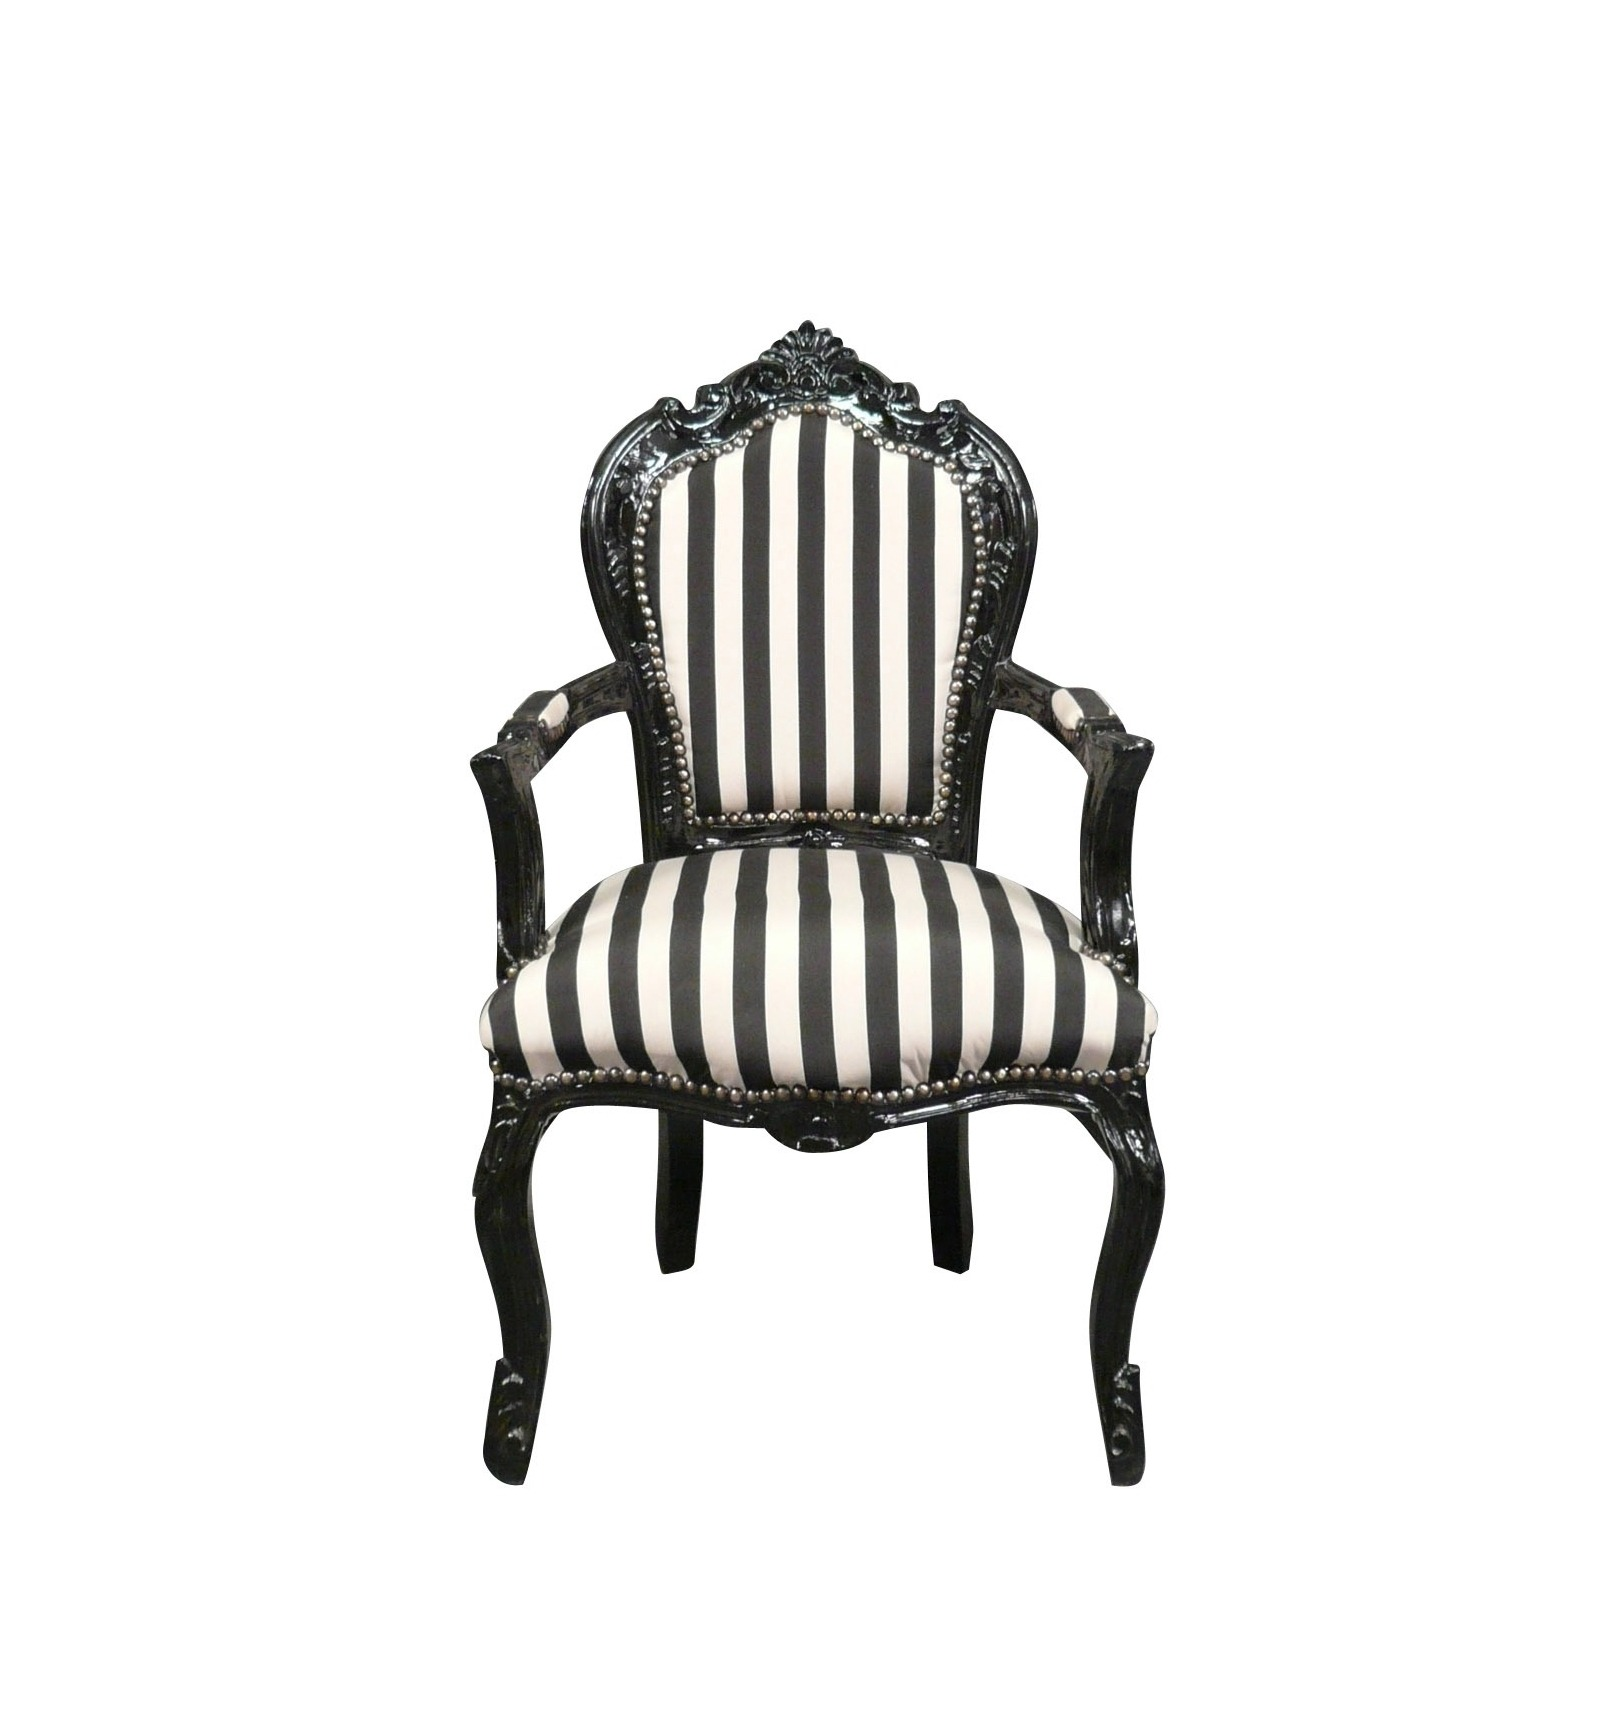 fauteuil baroque noir et blanc vente de mobilier de style. Black Bedroom Furniture Sets. Home Design Ideas